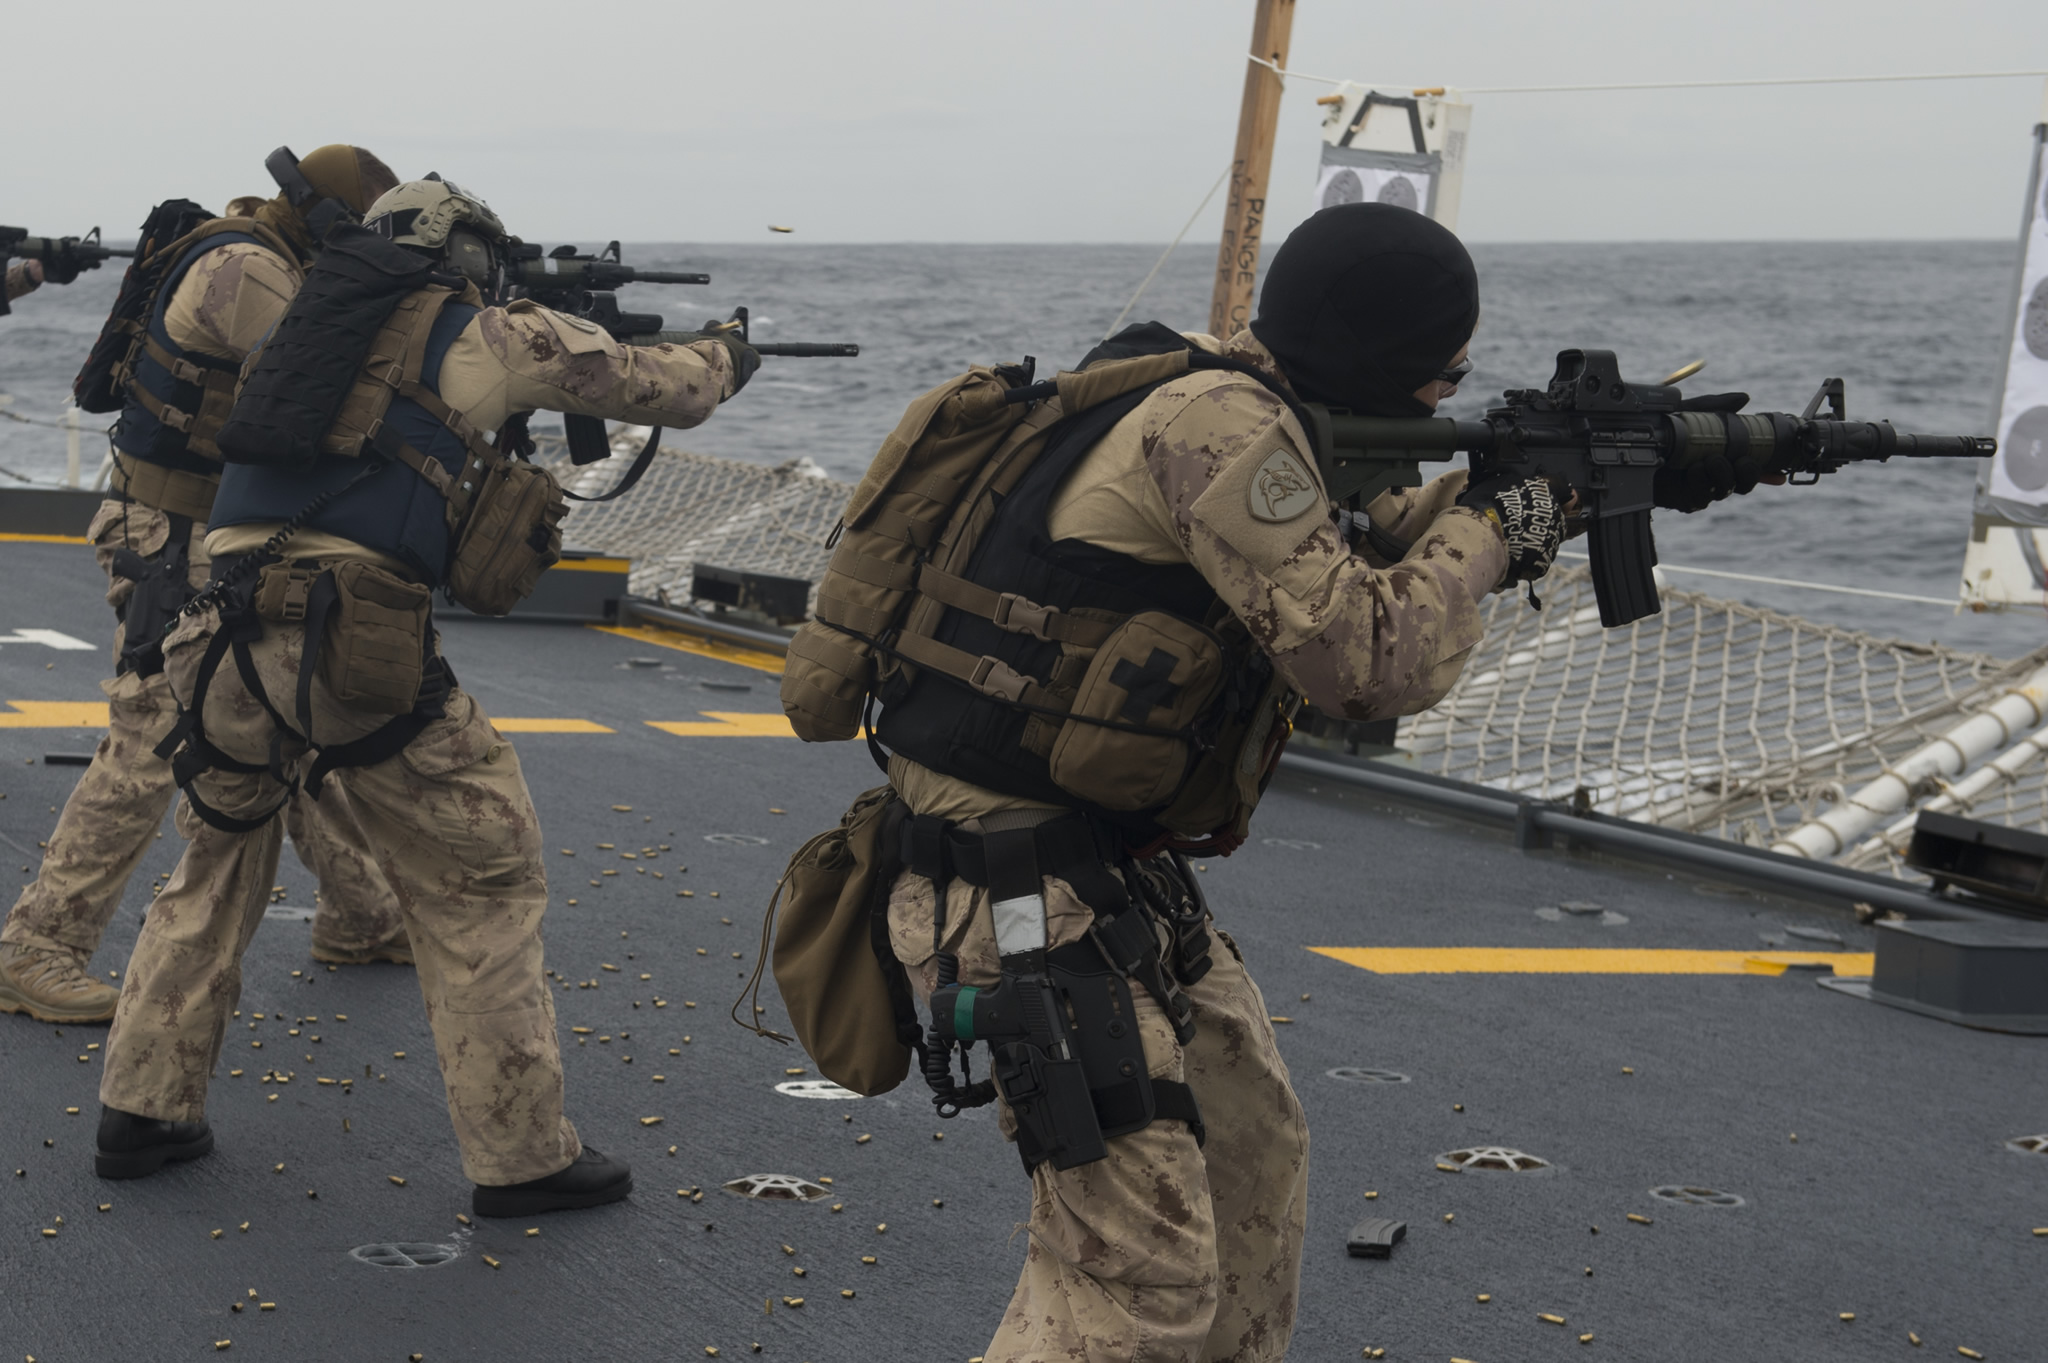 Mediterranean Sea. January 21, 2017 – Members of the Enhanced Naval Boarding Party conduct small arms firing training onboard Her Majesty's Canadian Ship St. John's as the ship transits the Mediterranean Sea during Operation REASSURANCE. (Photo: Leading Seaman Ogle Henry, Formation Imaging Services)